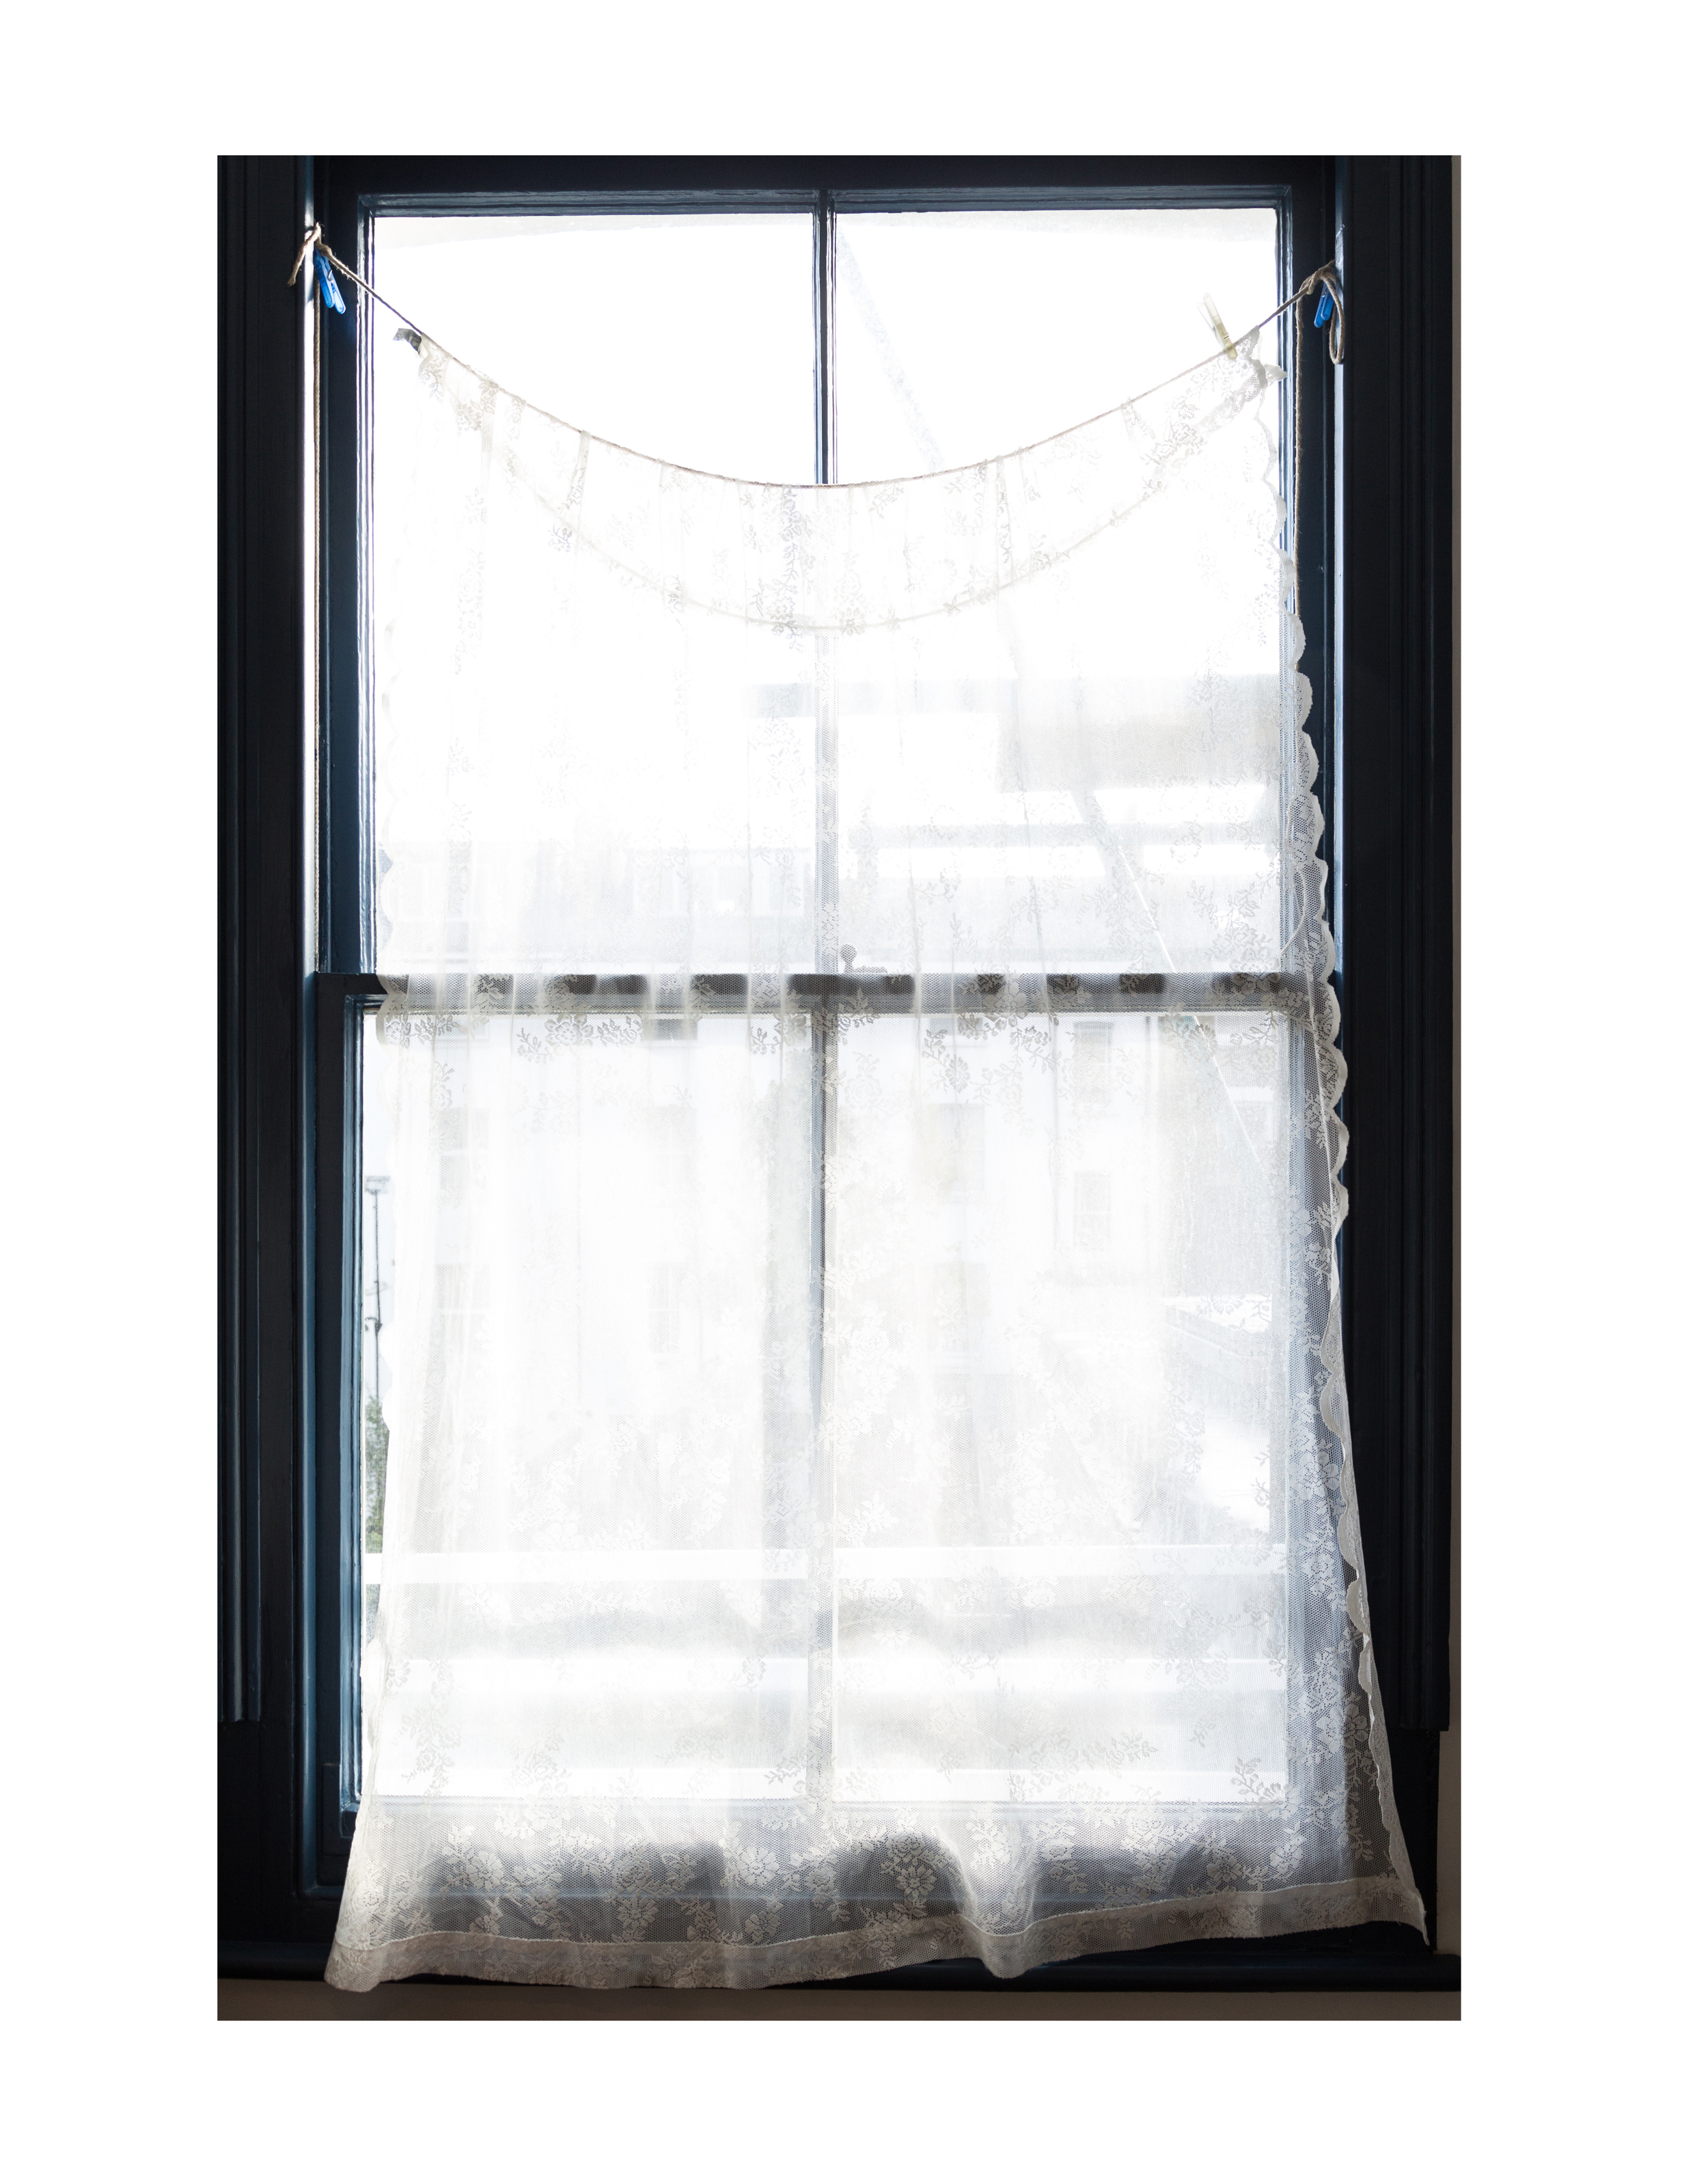 Vintage Curtain Window.jpg